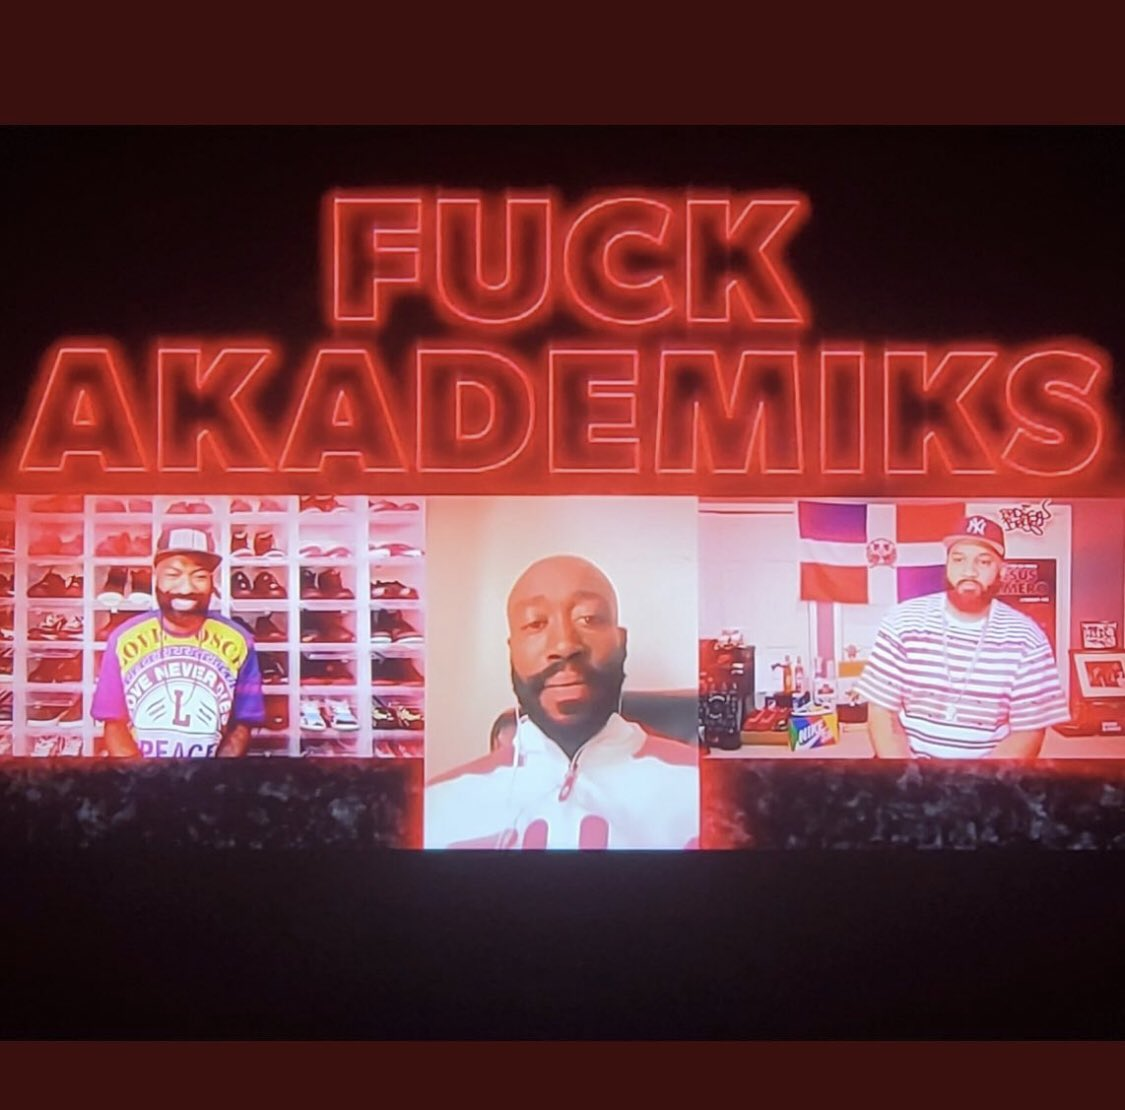 """Freddie Gibbs has ascended to elite levels of petty. Mans done took his """"Fuck Akademiks"""" tour to national TV. A king."""